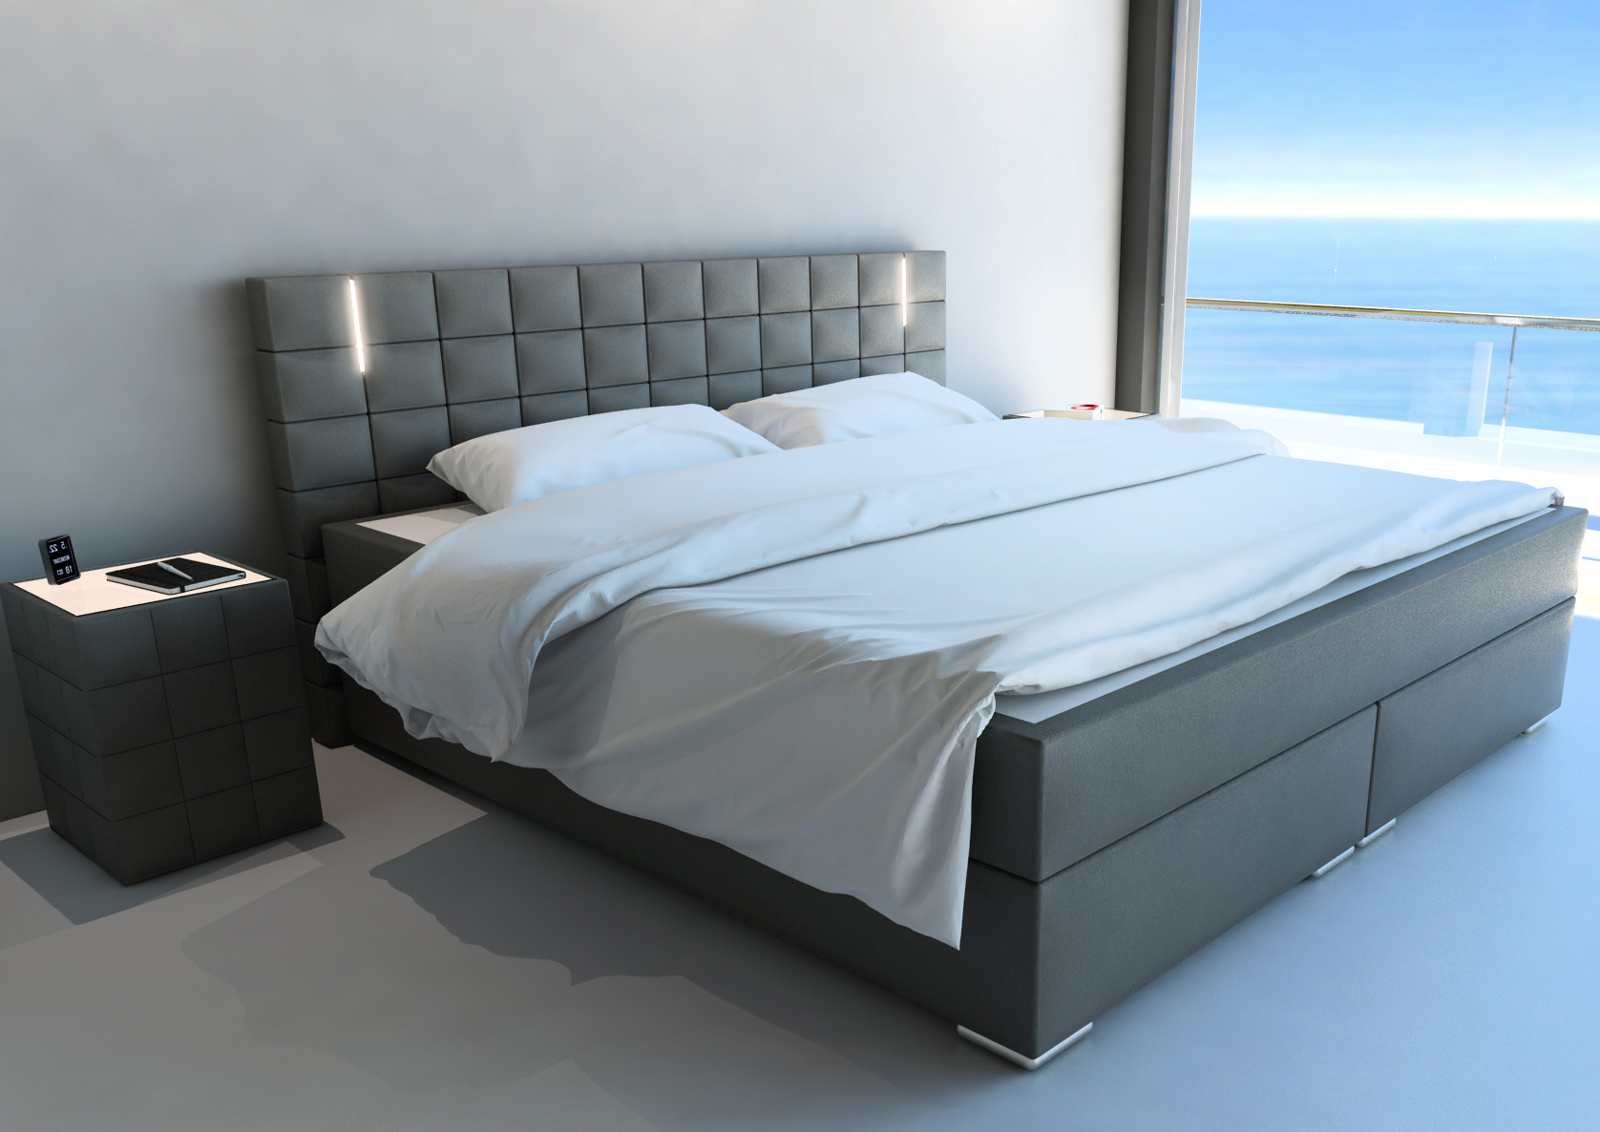 sam boxspringbett hotelbett led beleuchtung 180x200 cm. Black Bedroom Furniture Sets. Home Design Ideas